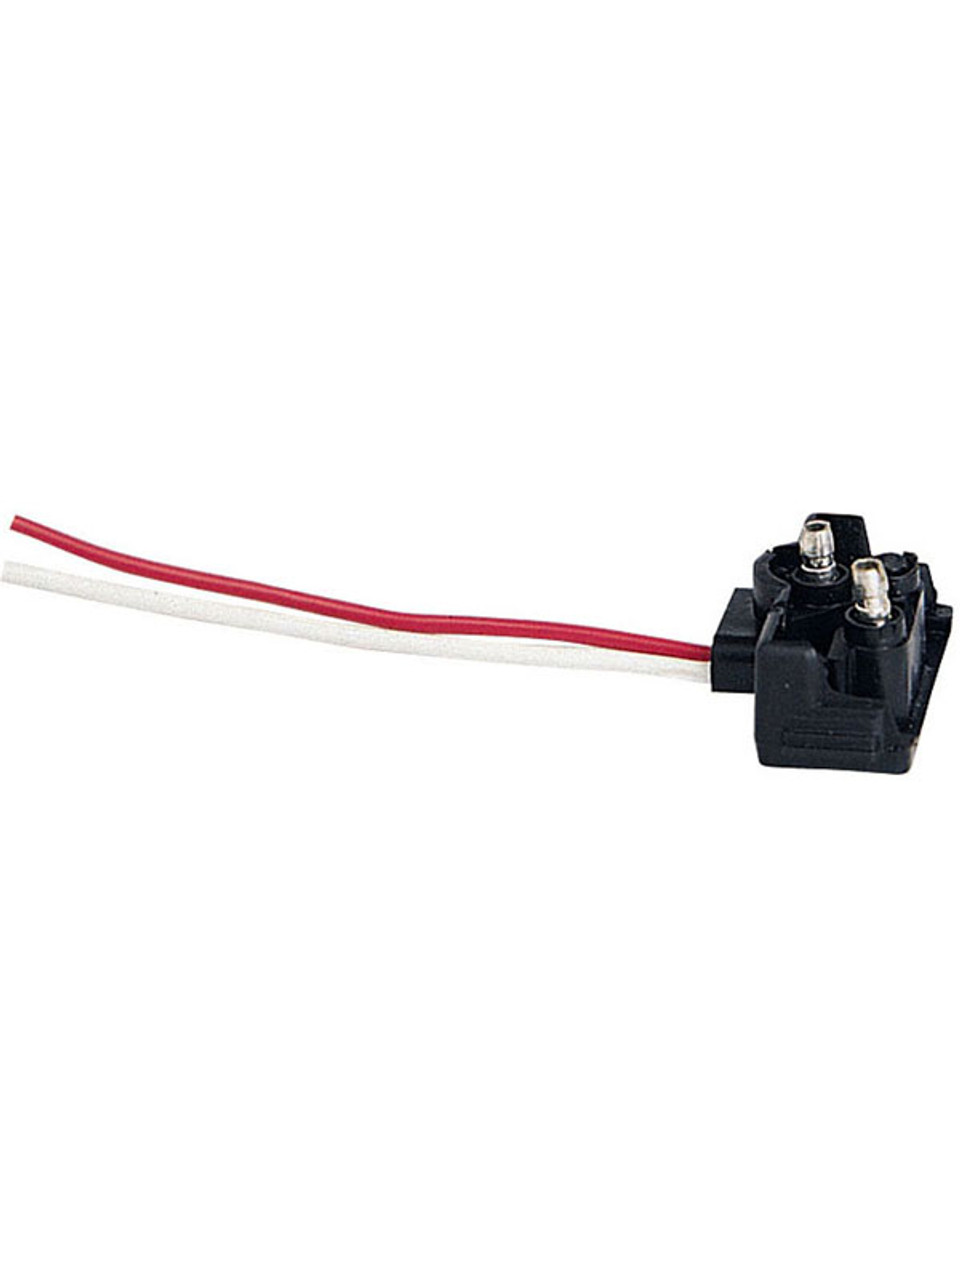 421-49 --- Peterson Replacement 2-Wire Right Angle Plug